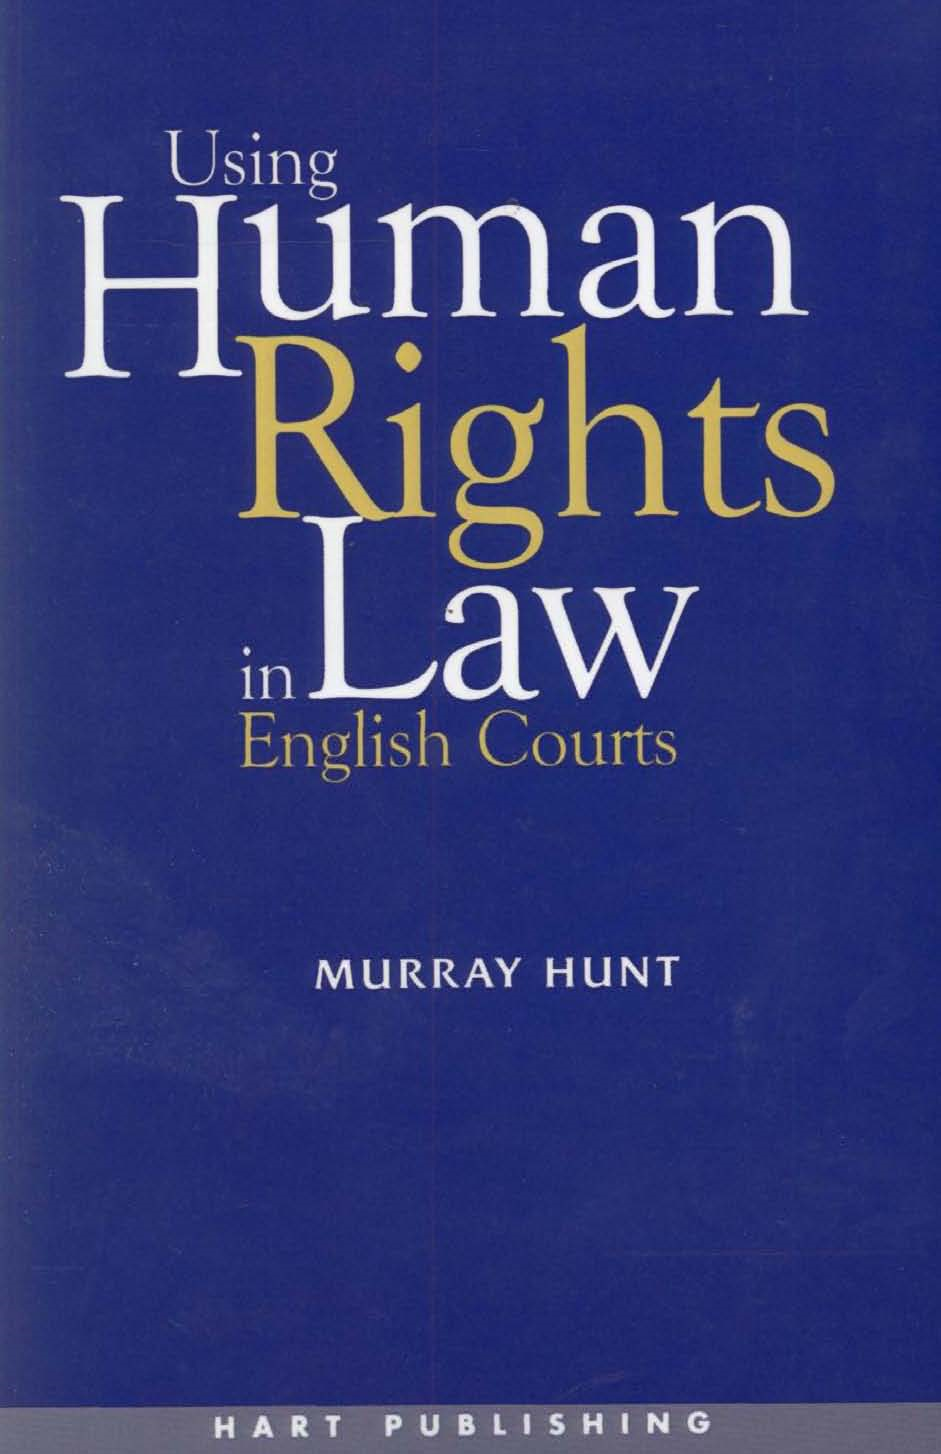 Using Human Rights Law in English Courts